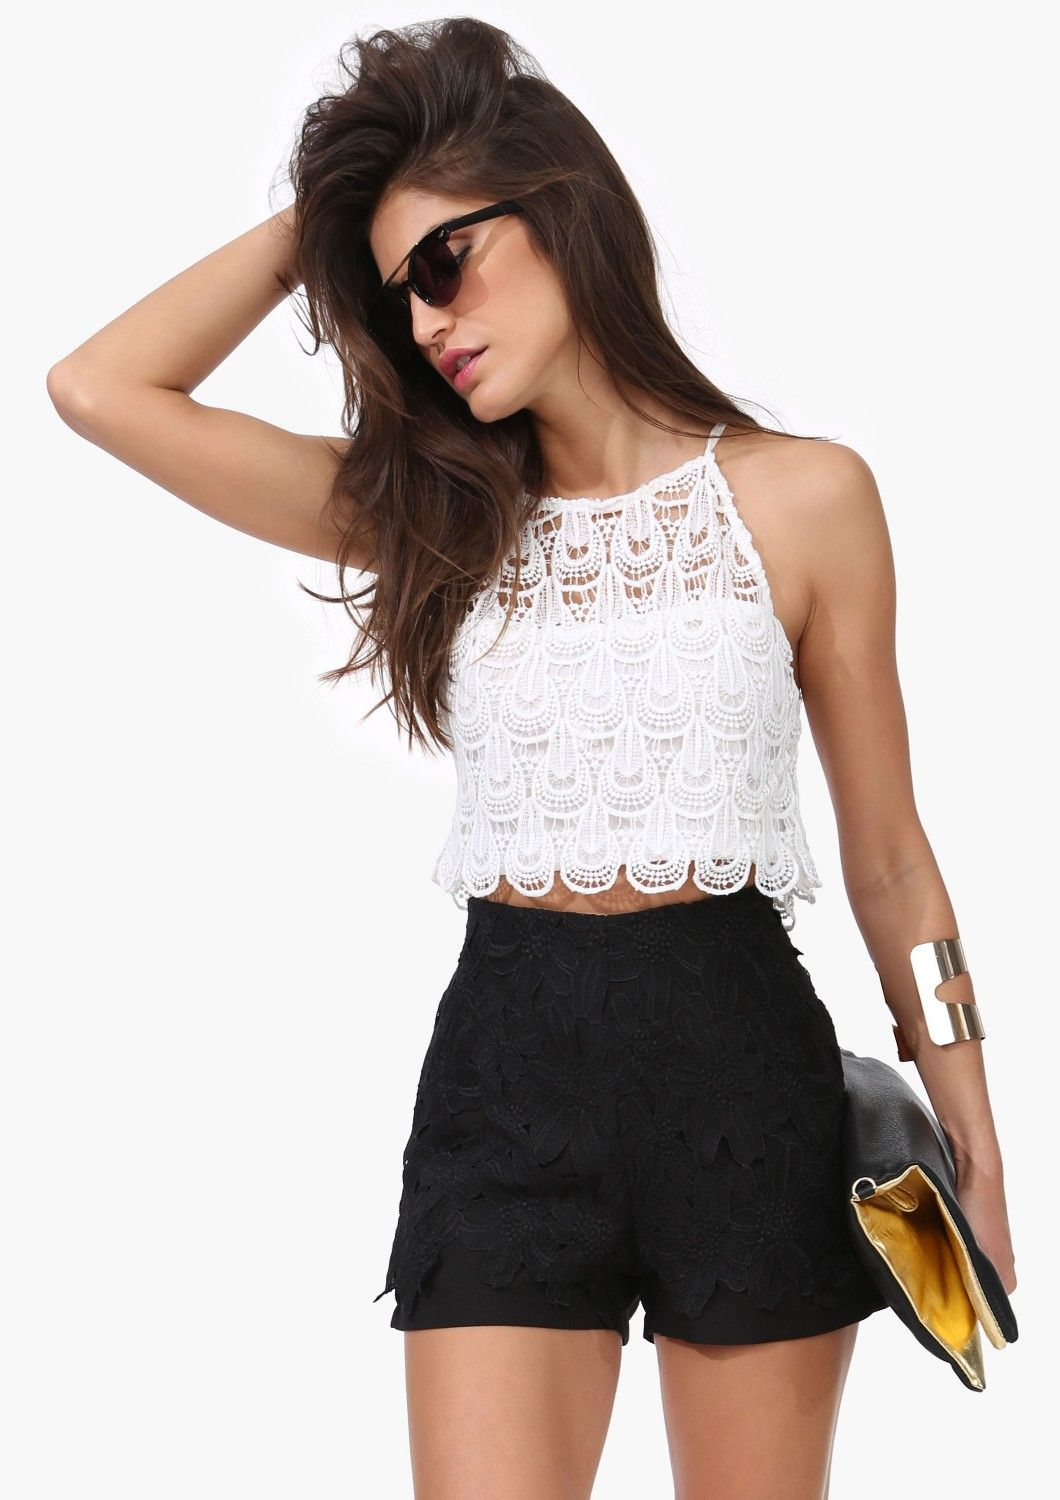 e0b54b5c2 White crop top..(Well I guess it is) Black high waist shorts..  3 ...